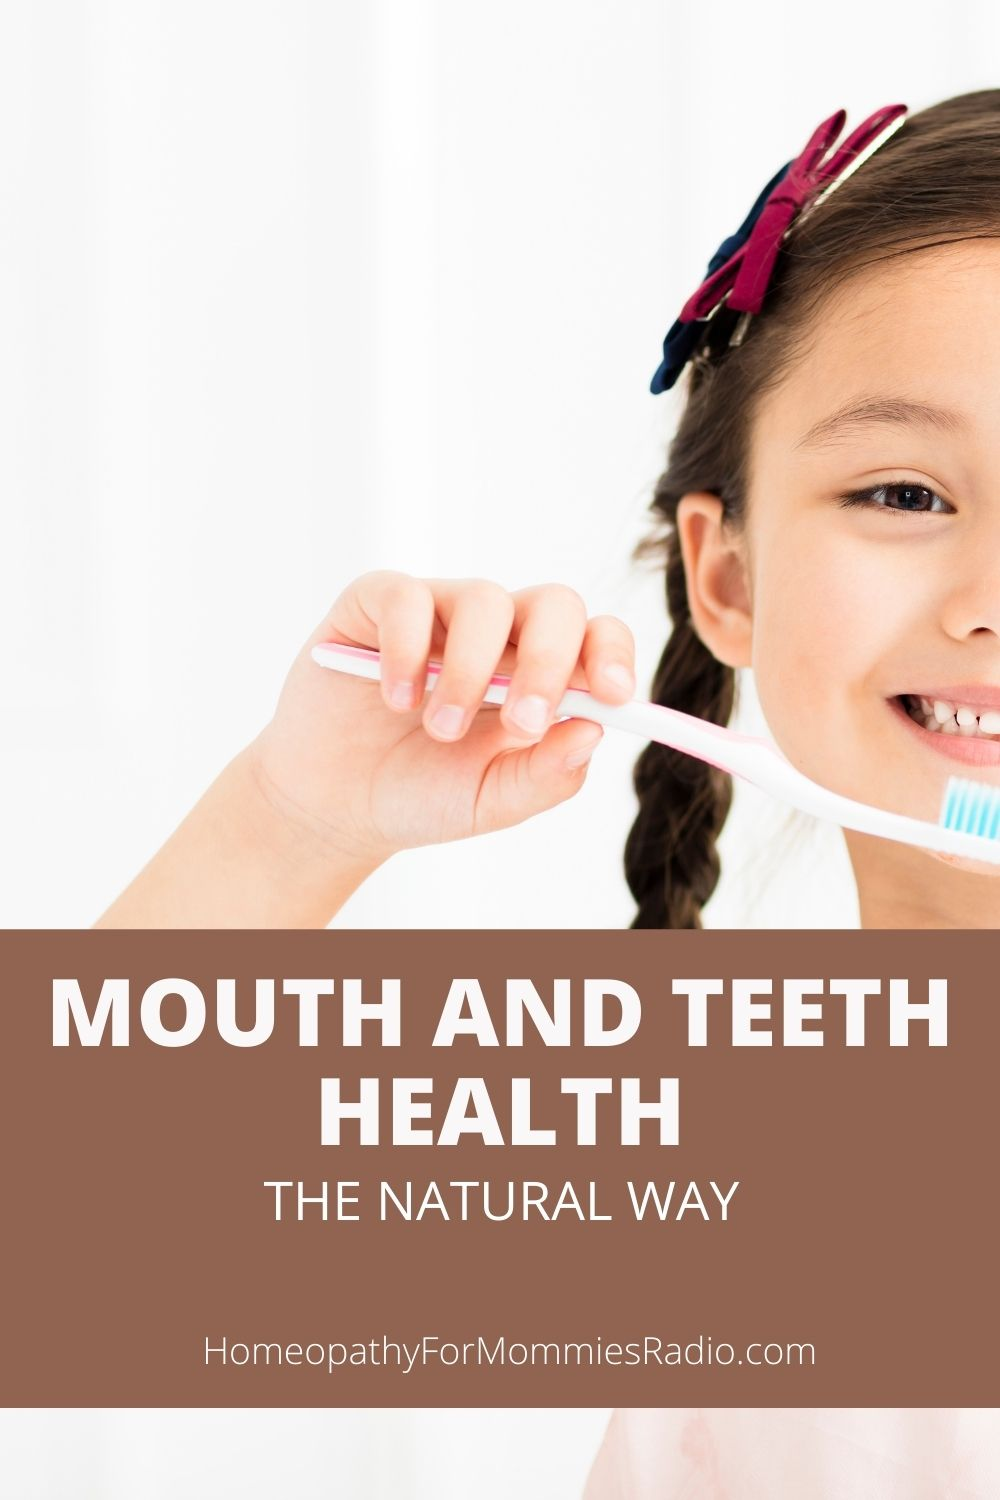 Mouth and Teeth Health: The Natural Way